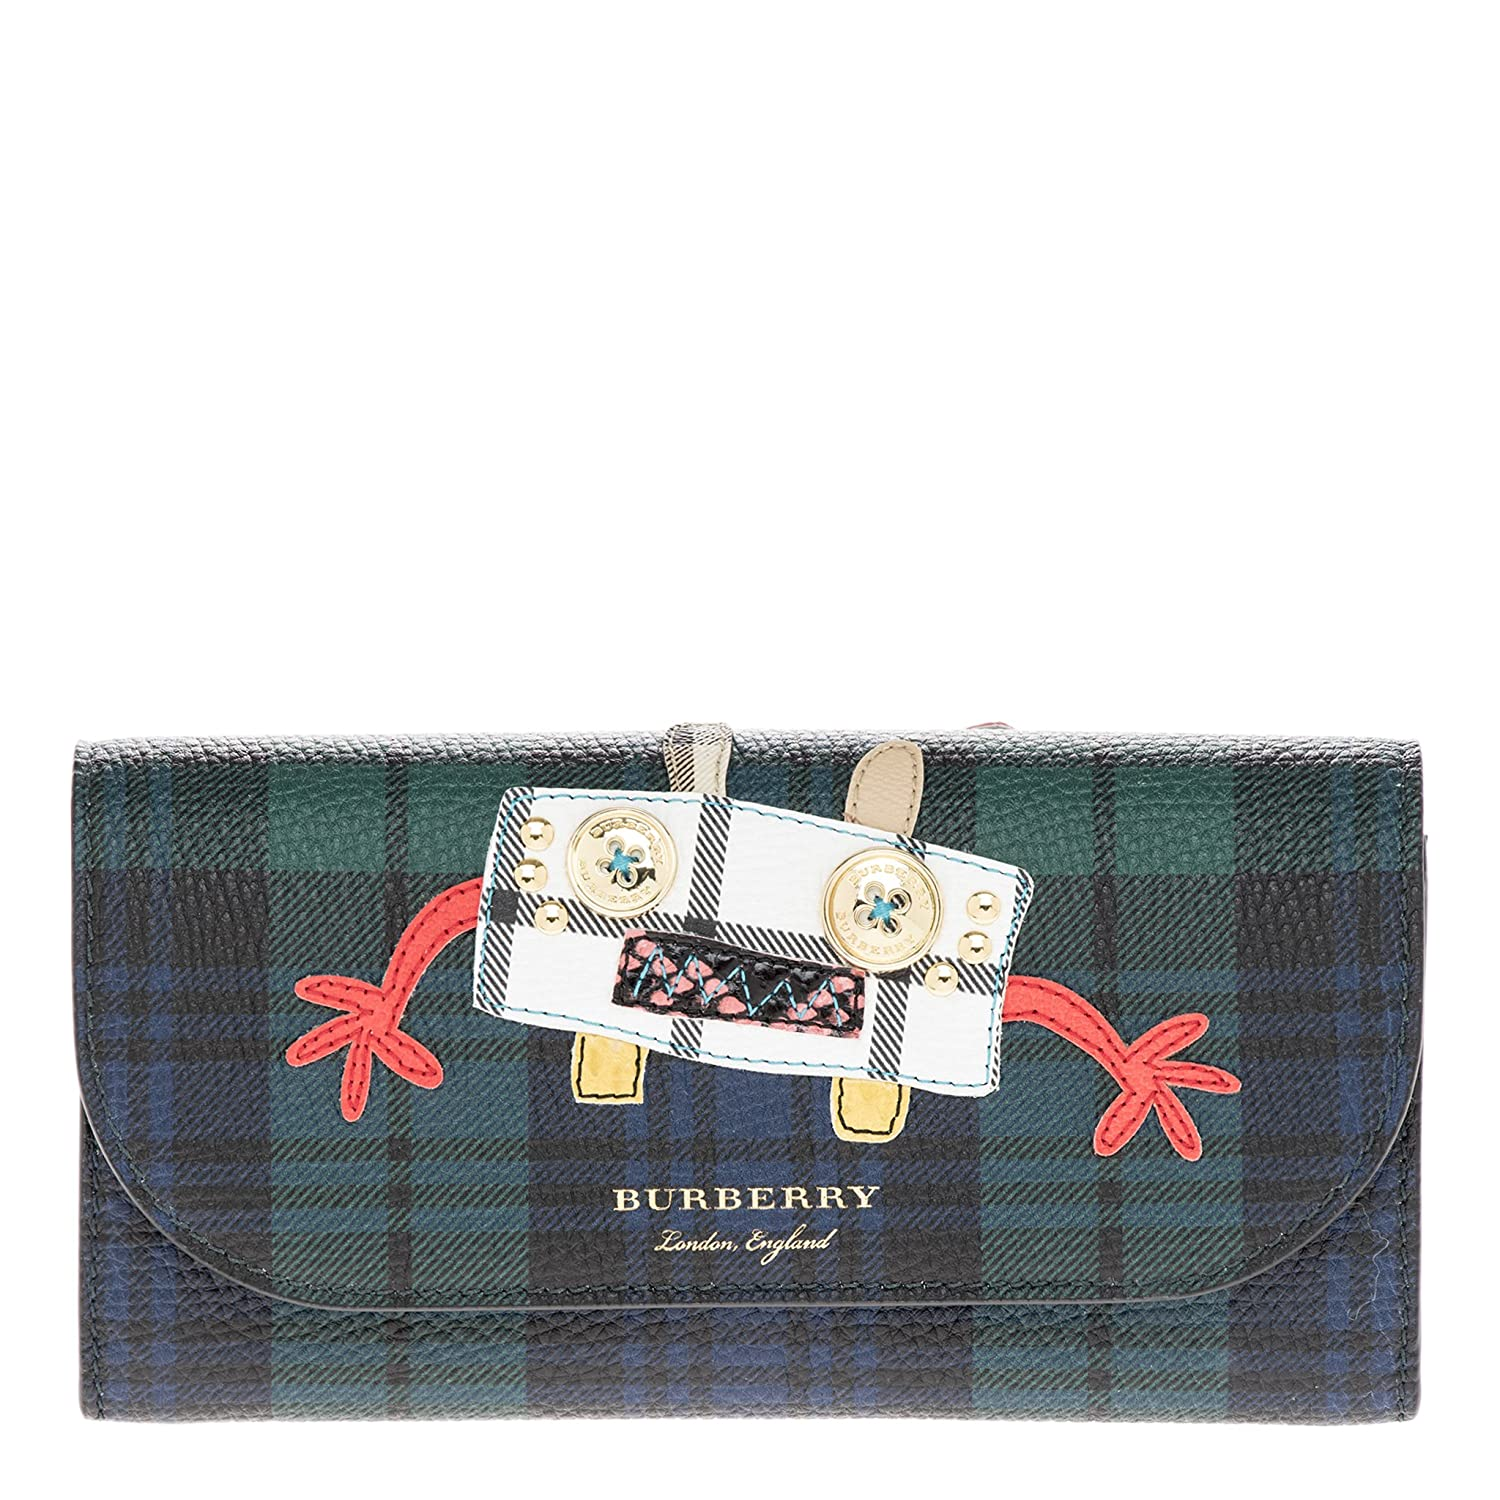 4bbcdbf23f1ac Burberry Women s Creature Applique Tartan Leather Wallet with Chain Green